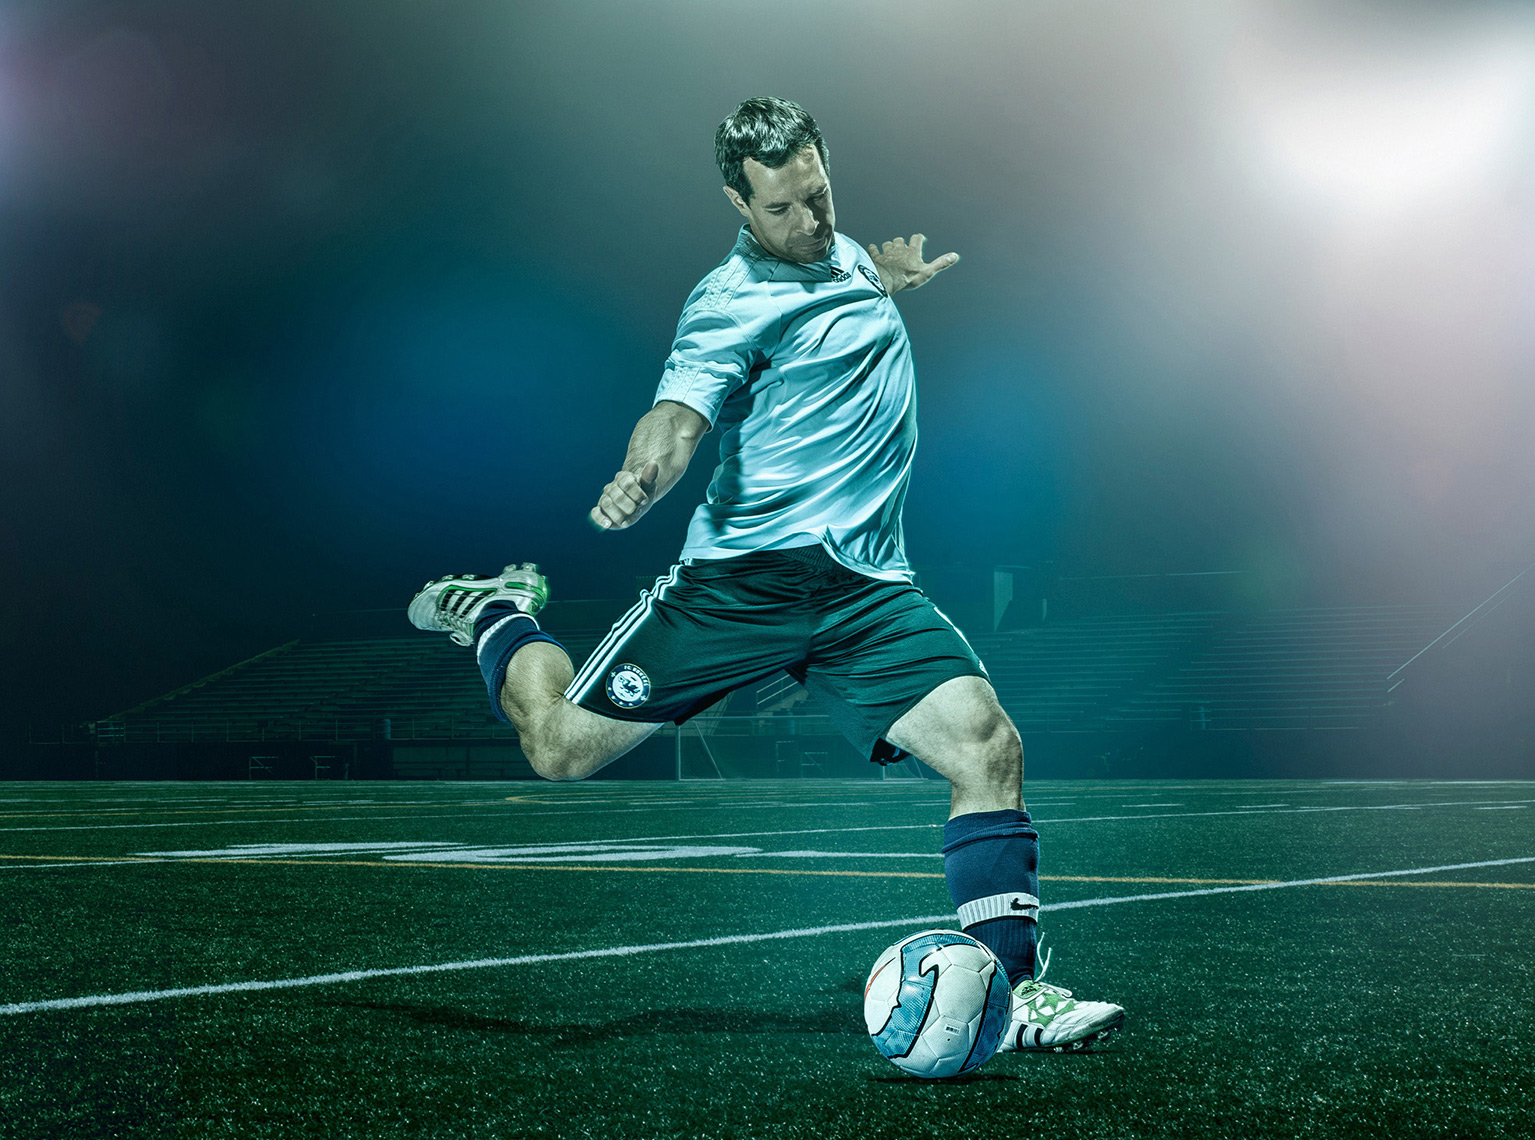 Soccer_36223_Crop-as-Smart-Object-1